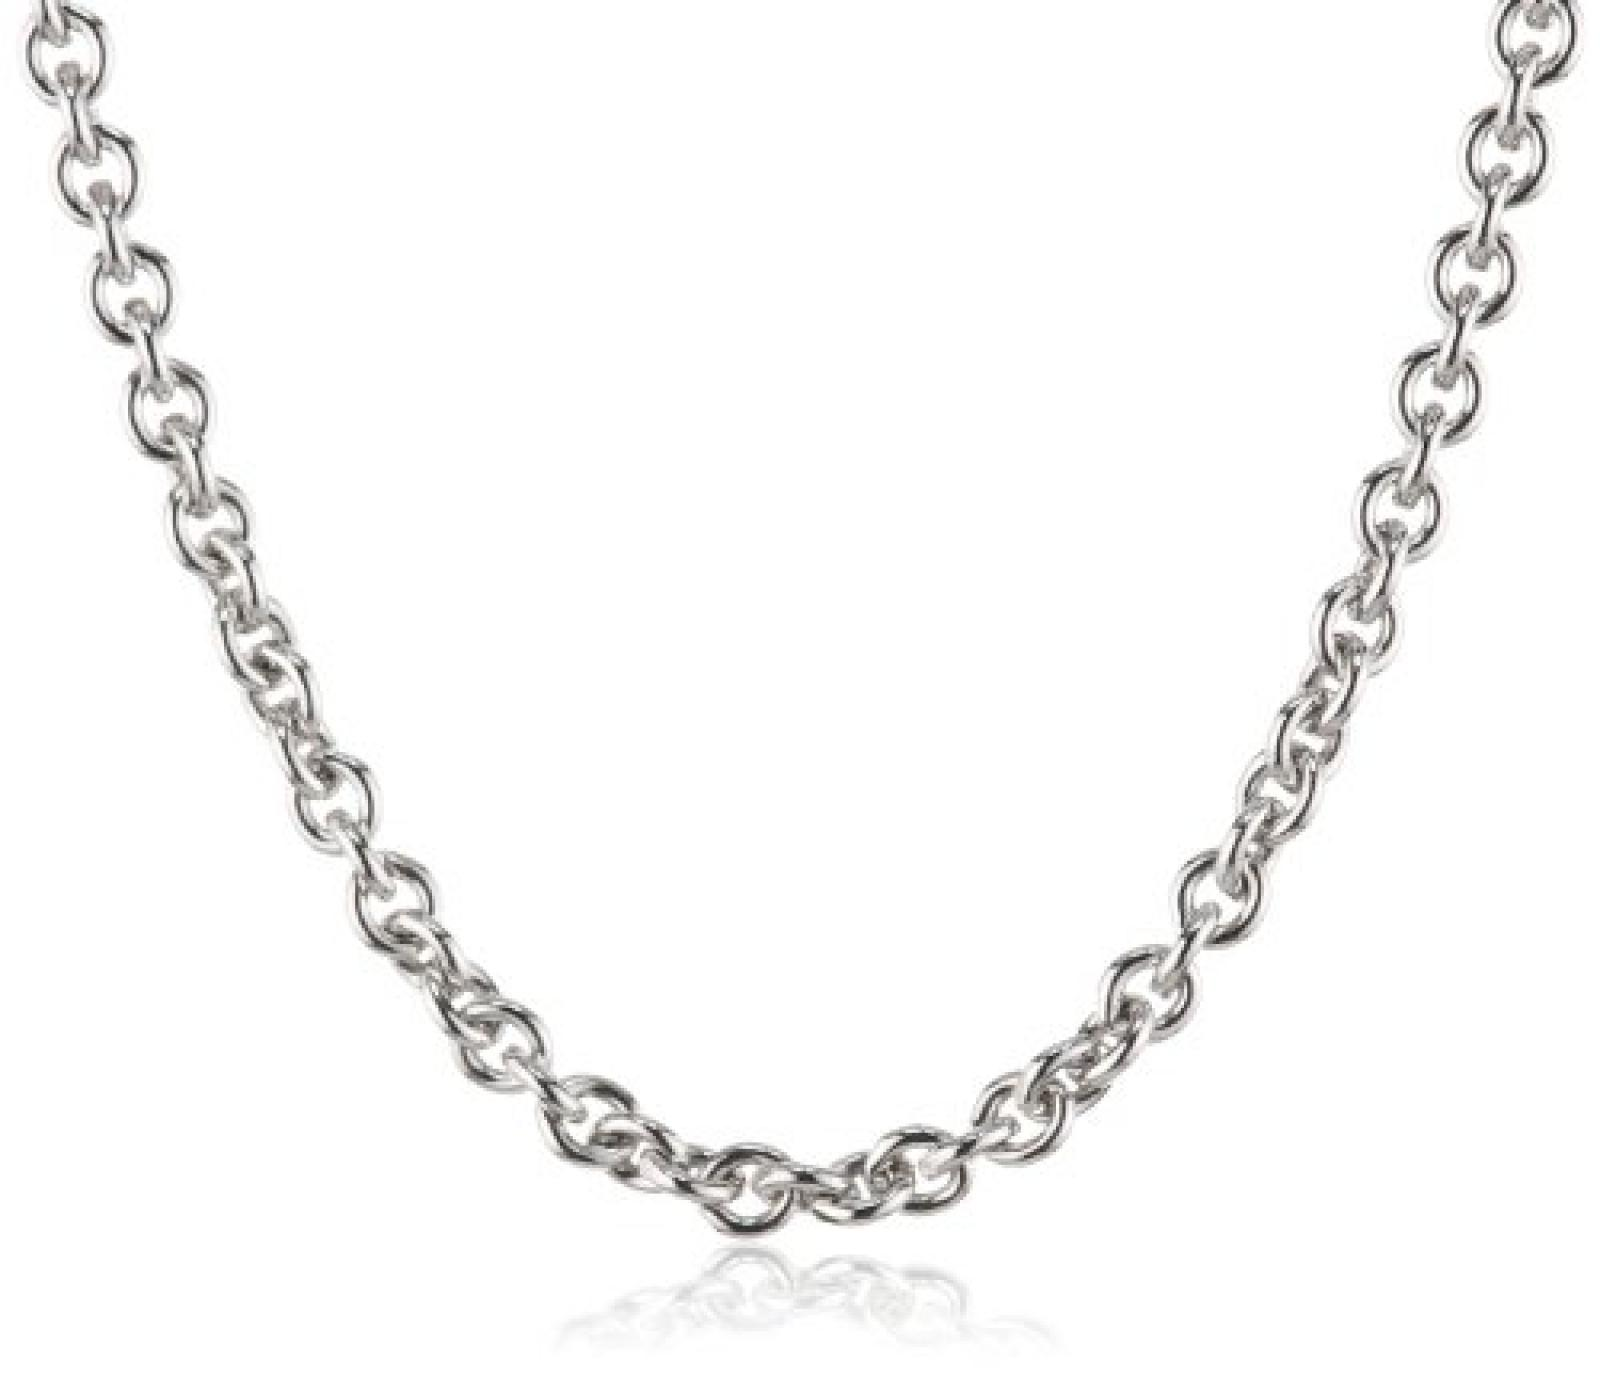 Amor Jewelry Unisex-Halskette 925 Sterling Silber 308892